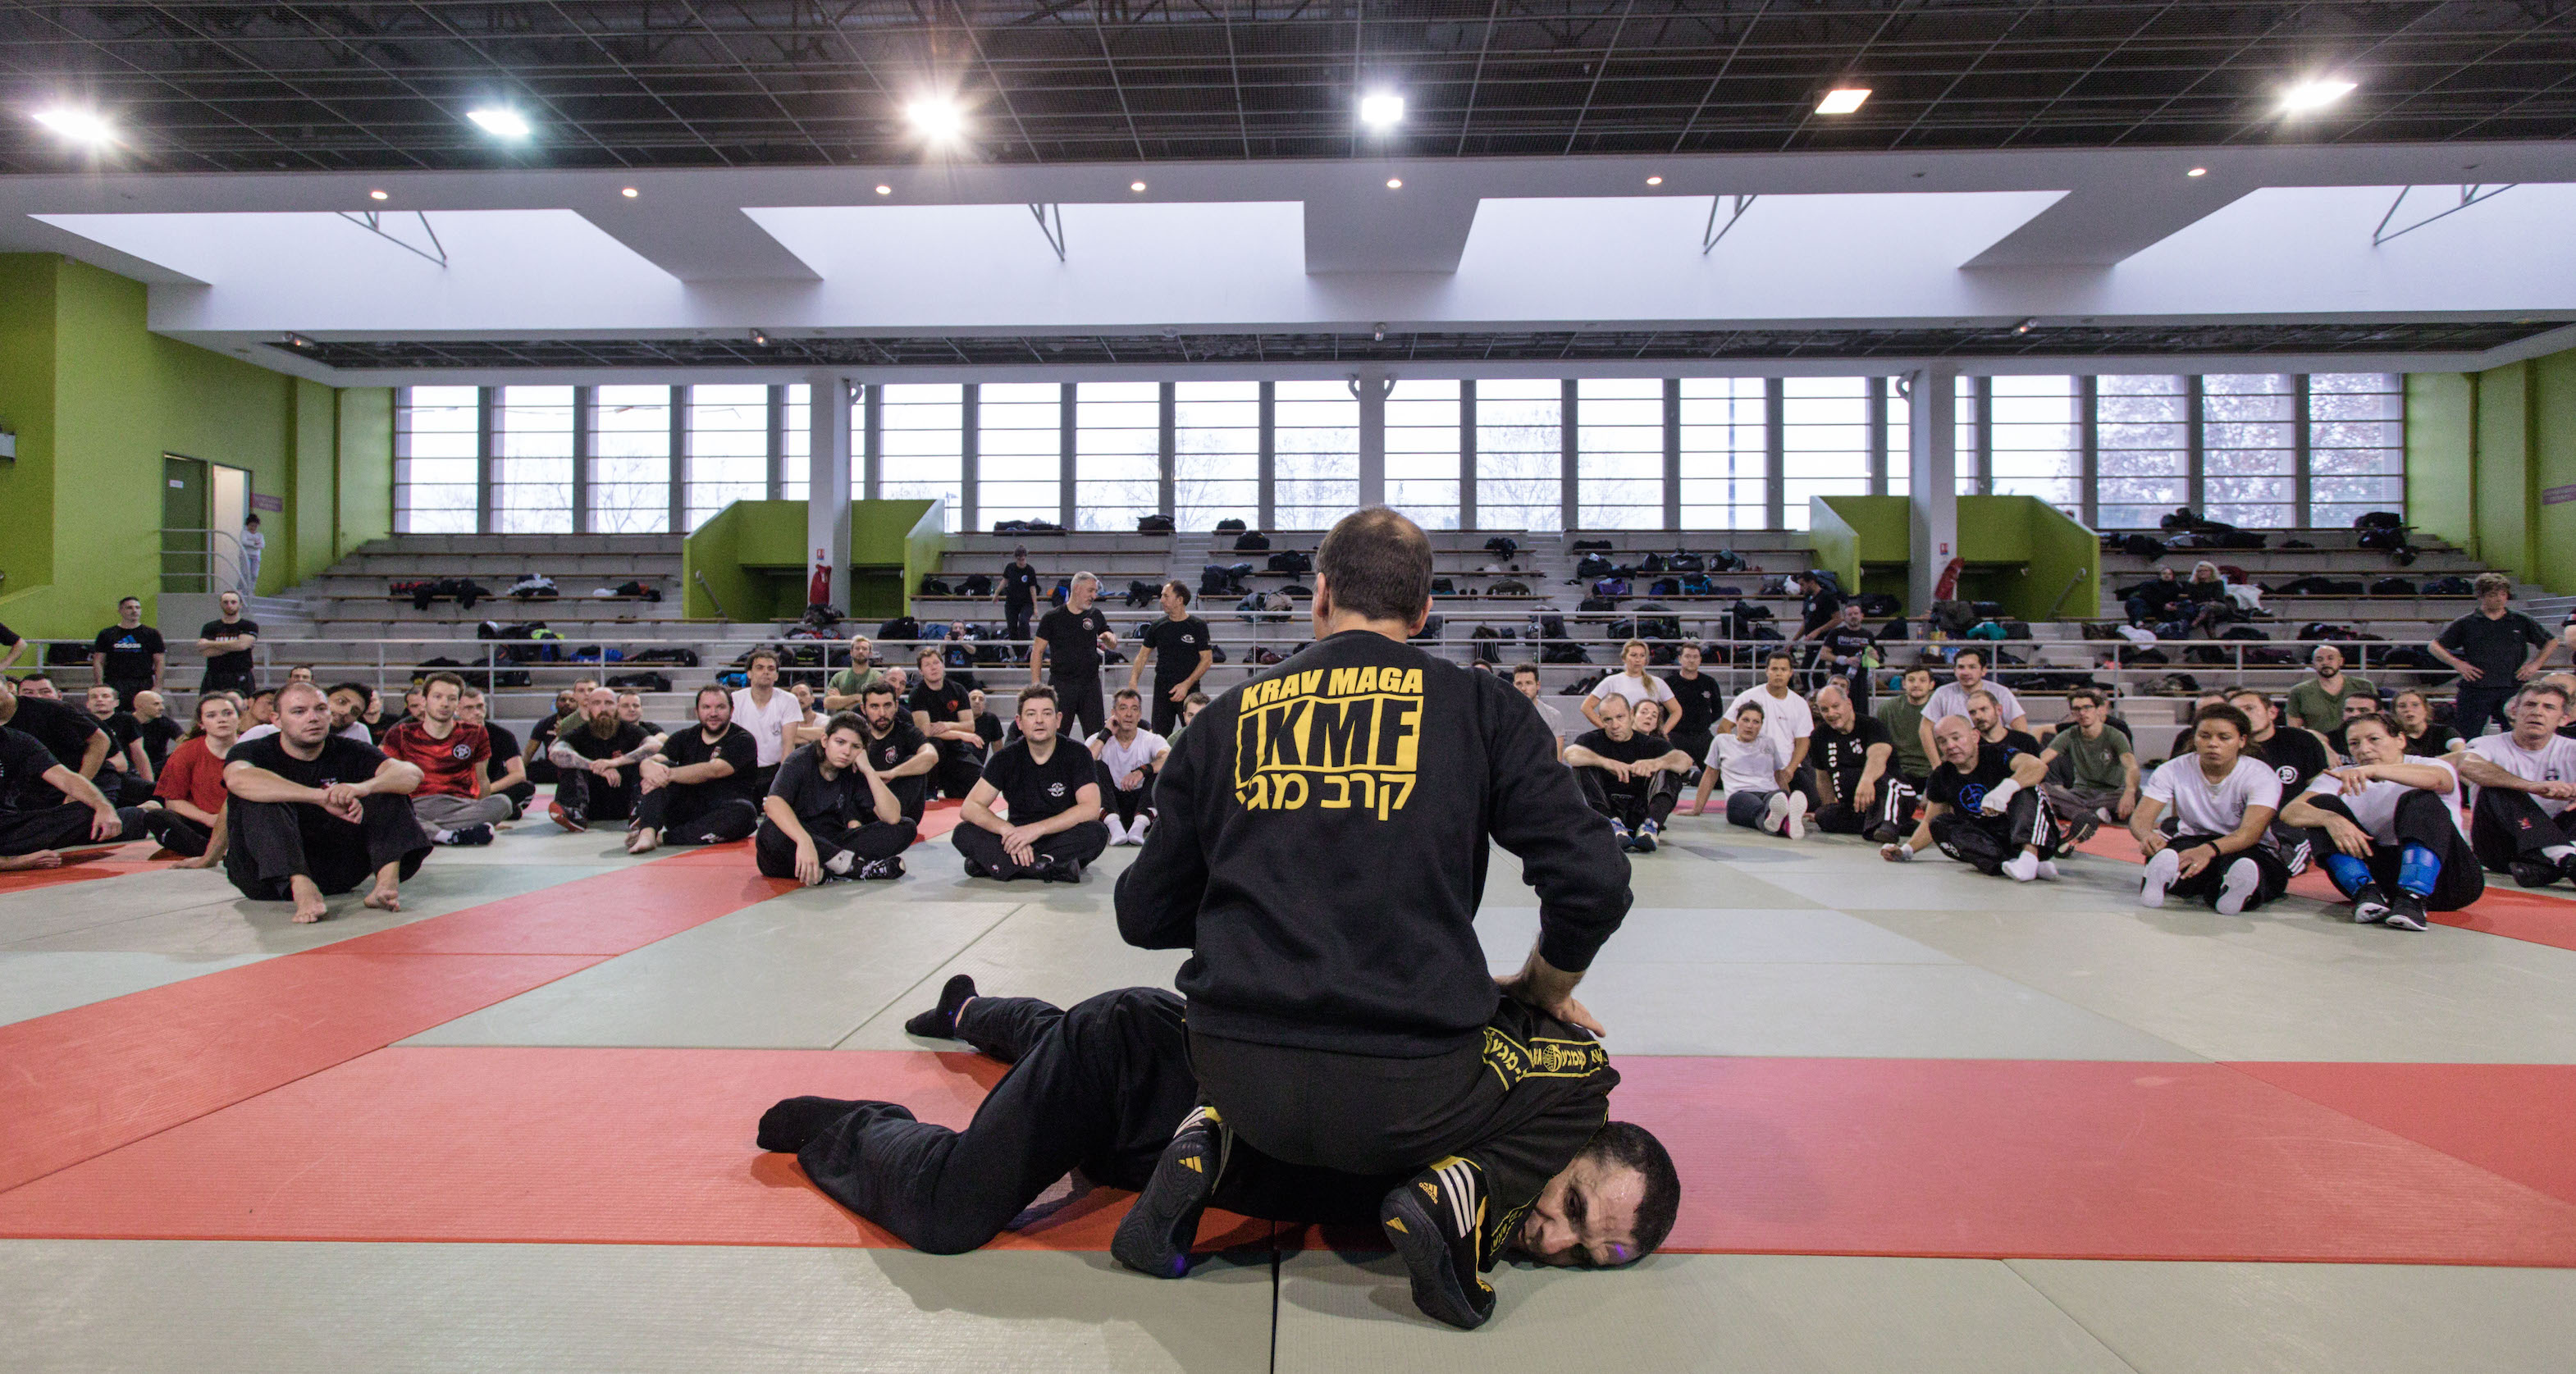 FFK_Stage_KravMaga-2018-026 copie